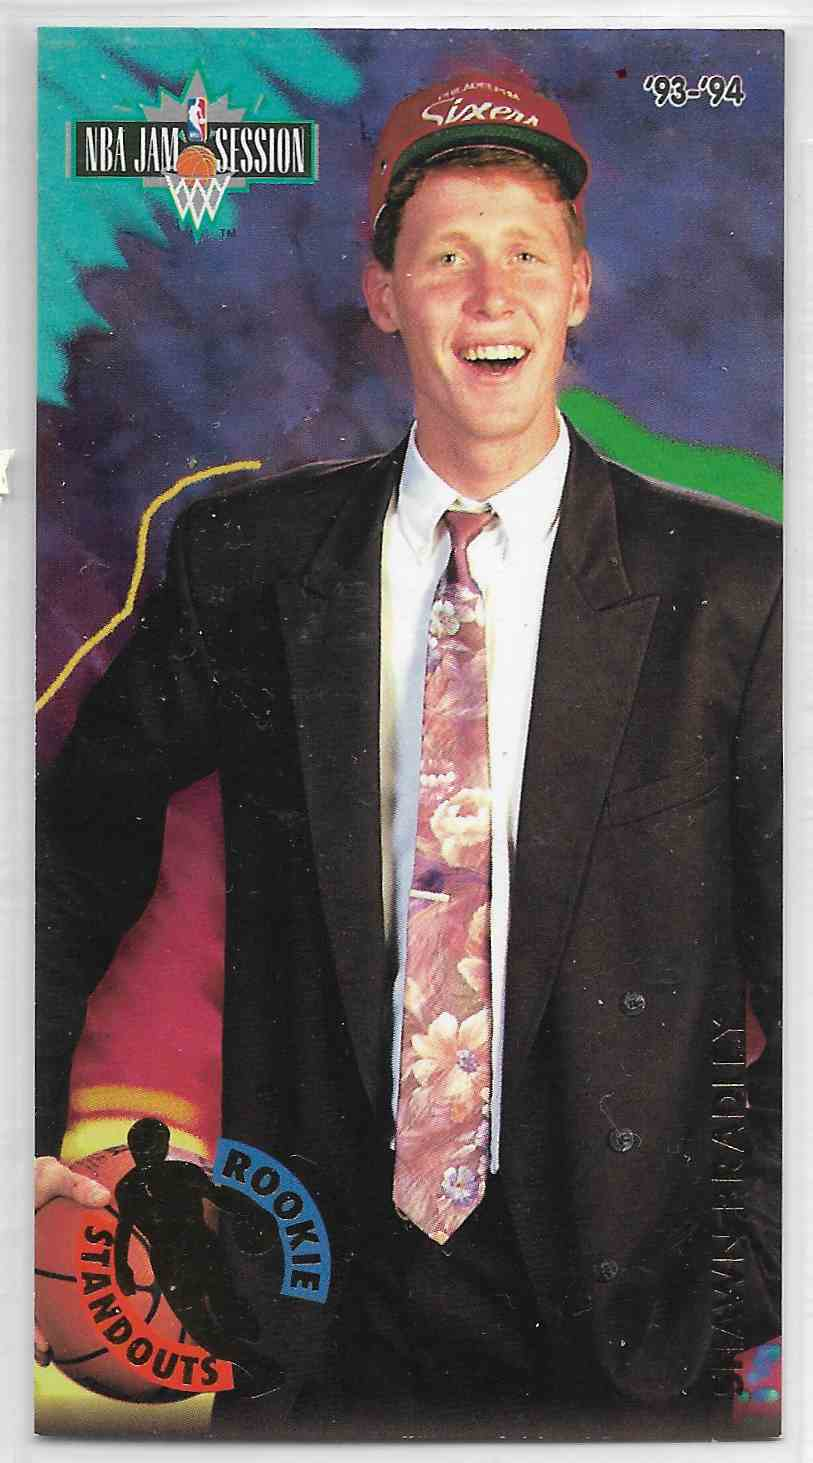 1993-94 Fleer NBA Jam Session Shawn Bradley #2 card front image